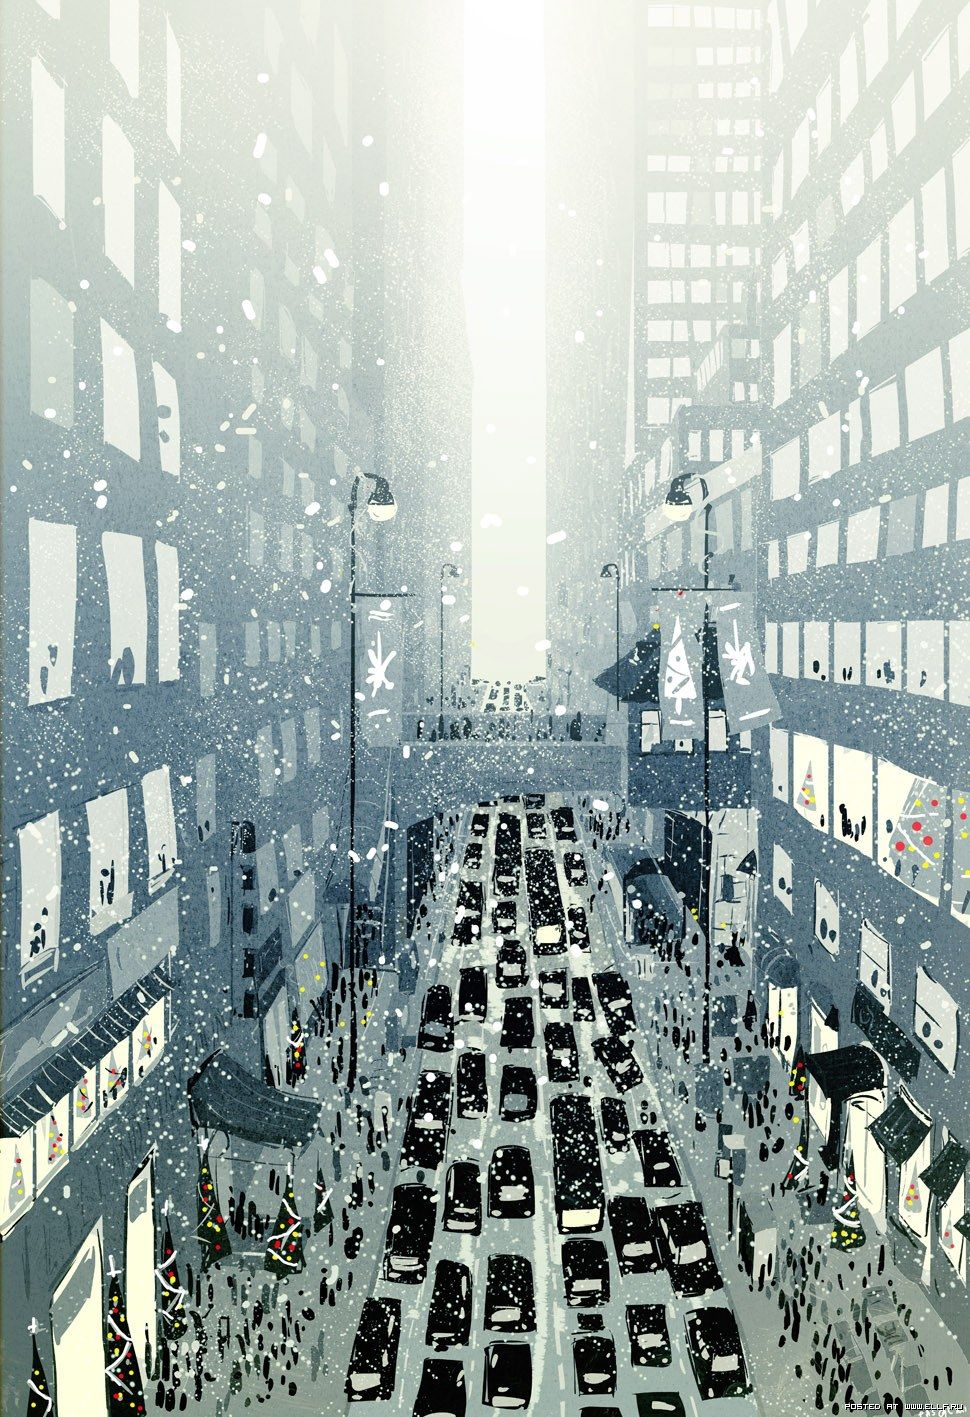 Incredibly positive work Pascal Campion (80 illustrations)